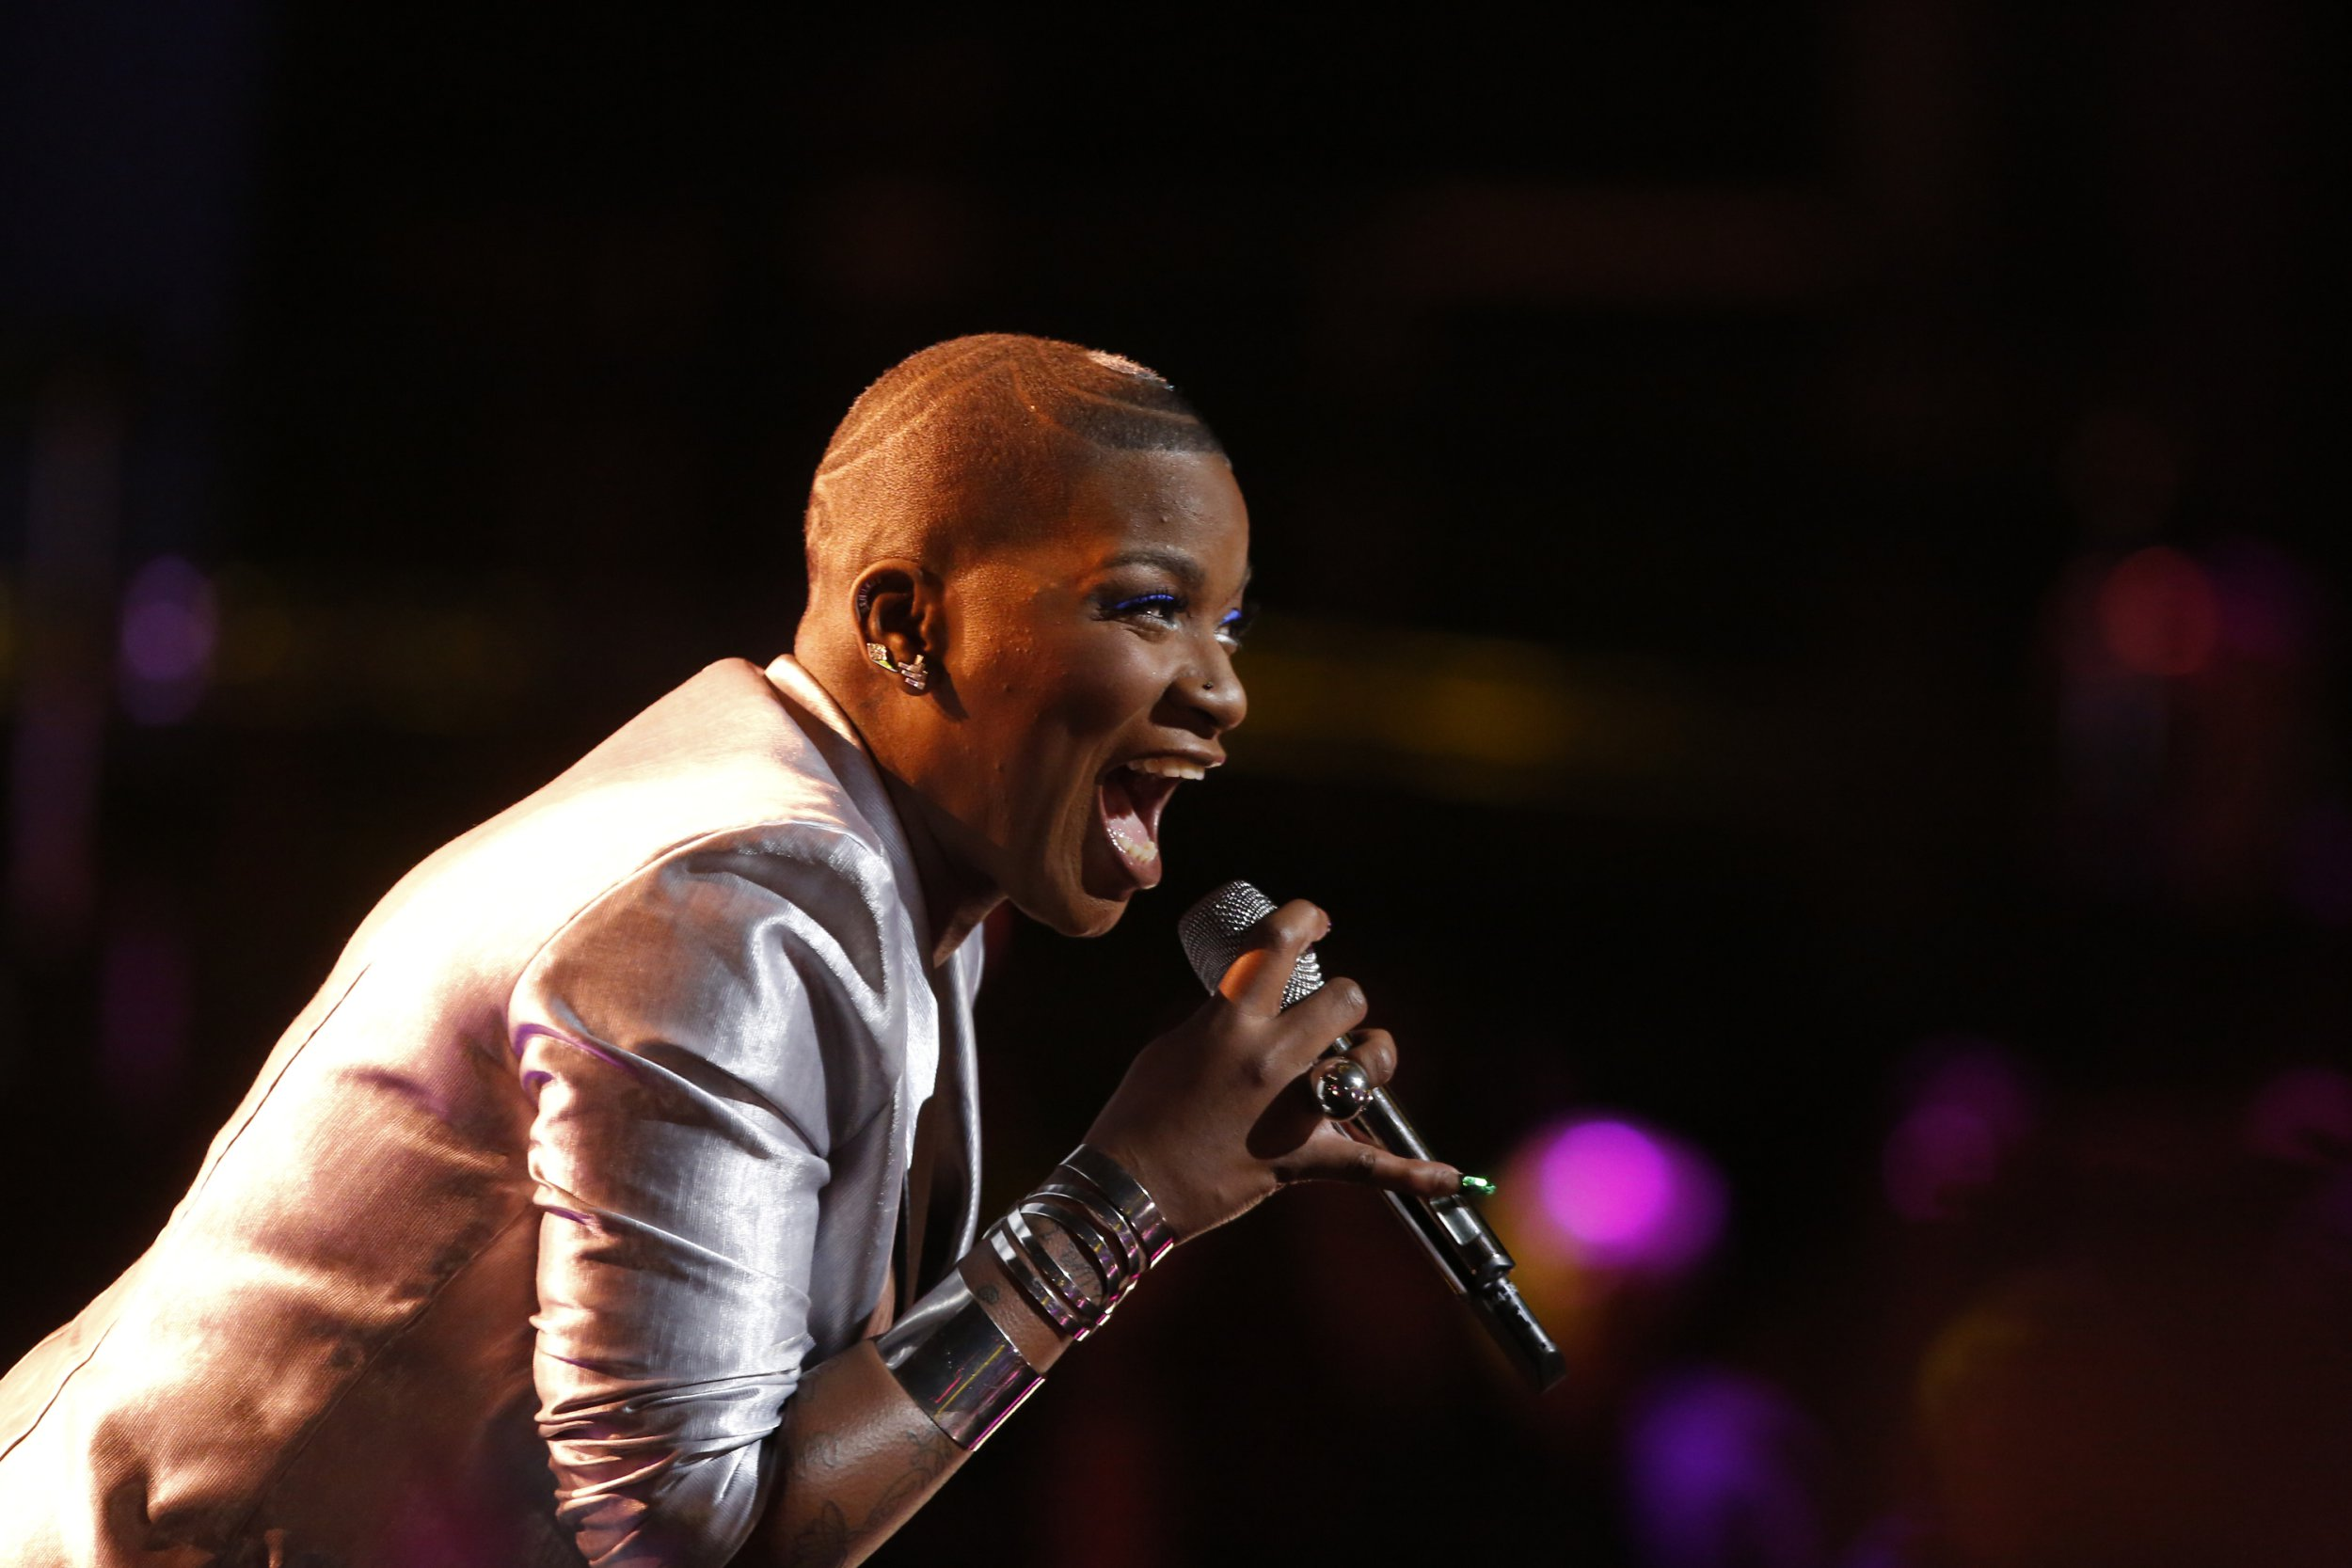 """THE VOICE -- """"Live Top 11"""" Episode 1318A -- Pictured: Janice Freeman -- (Photo by: Trae Patton/NBC/NBCU Photo Bank via Getty Images)"""